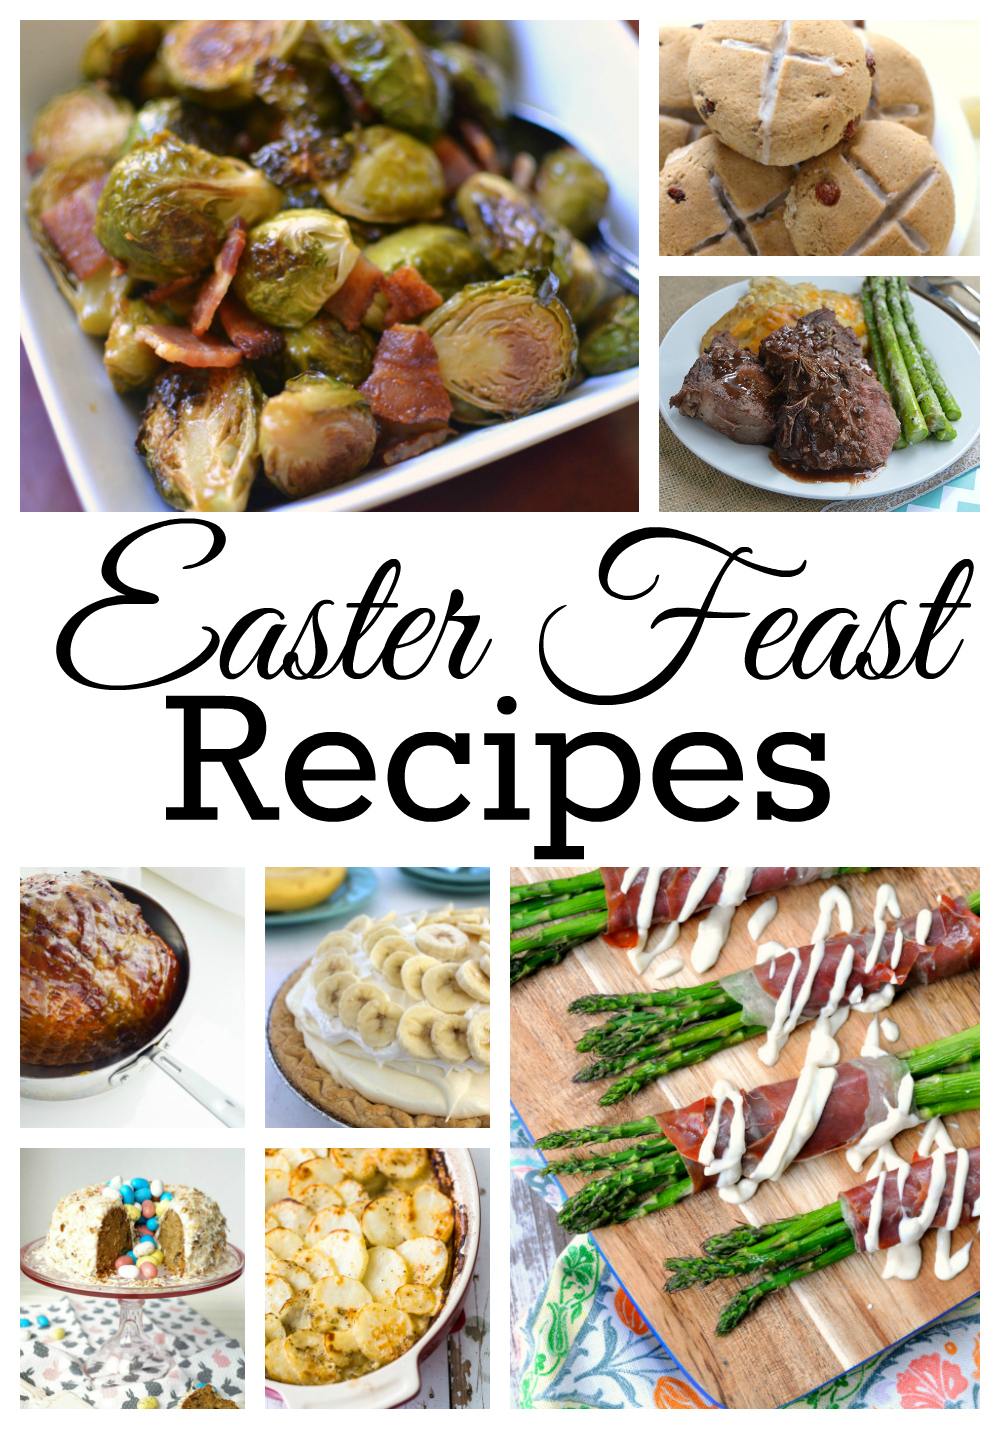 Easter Feast Recipes